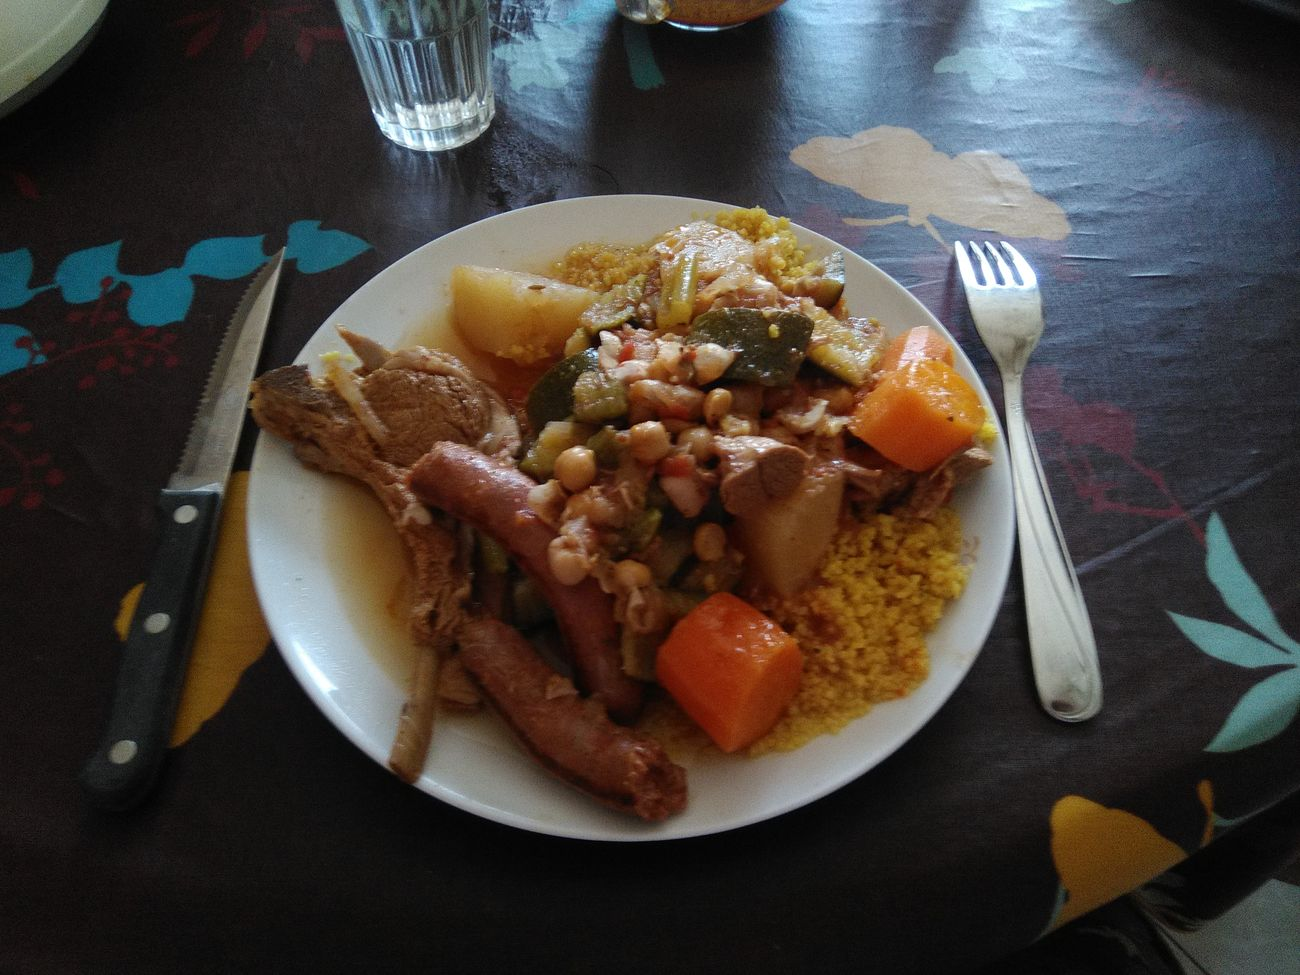 Couscous Time  Couscous Maison Food And Drink Food Plate Ready-to-eat Temptation Cooked